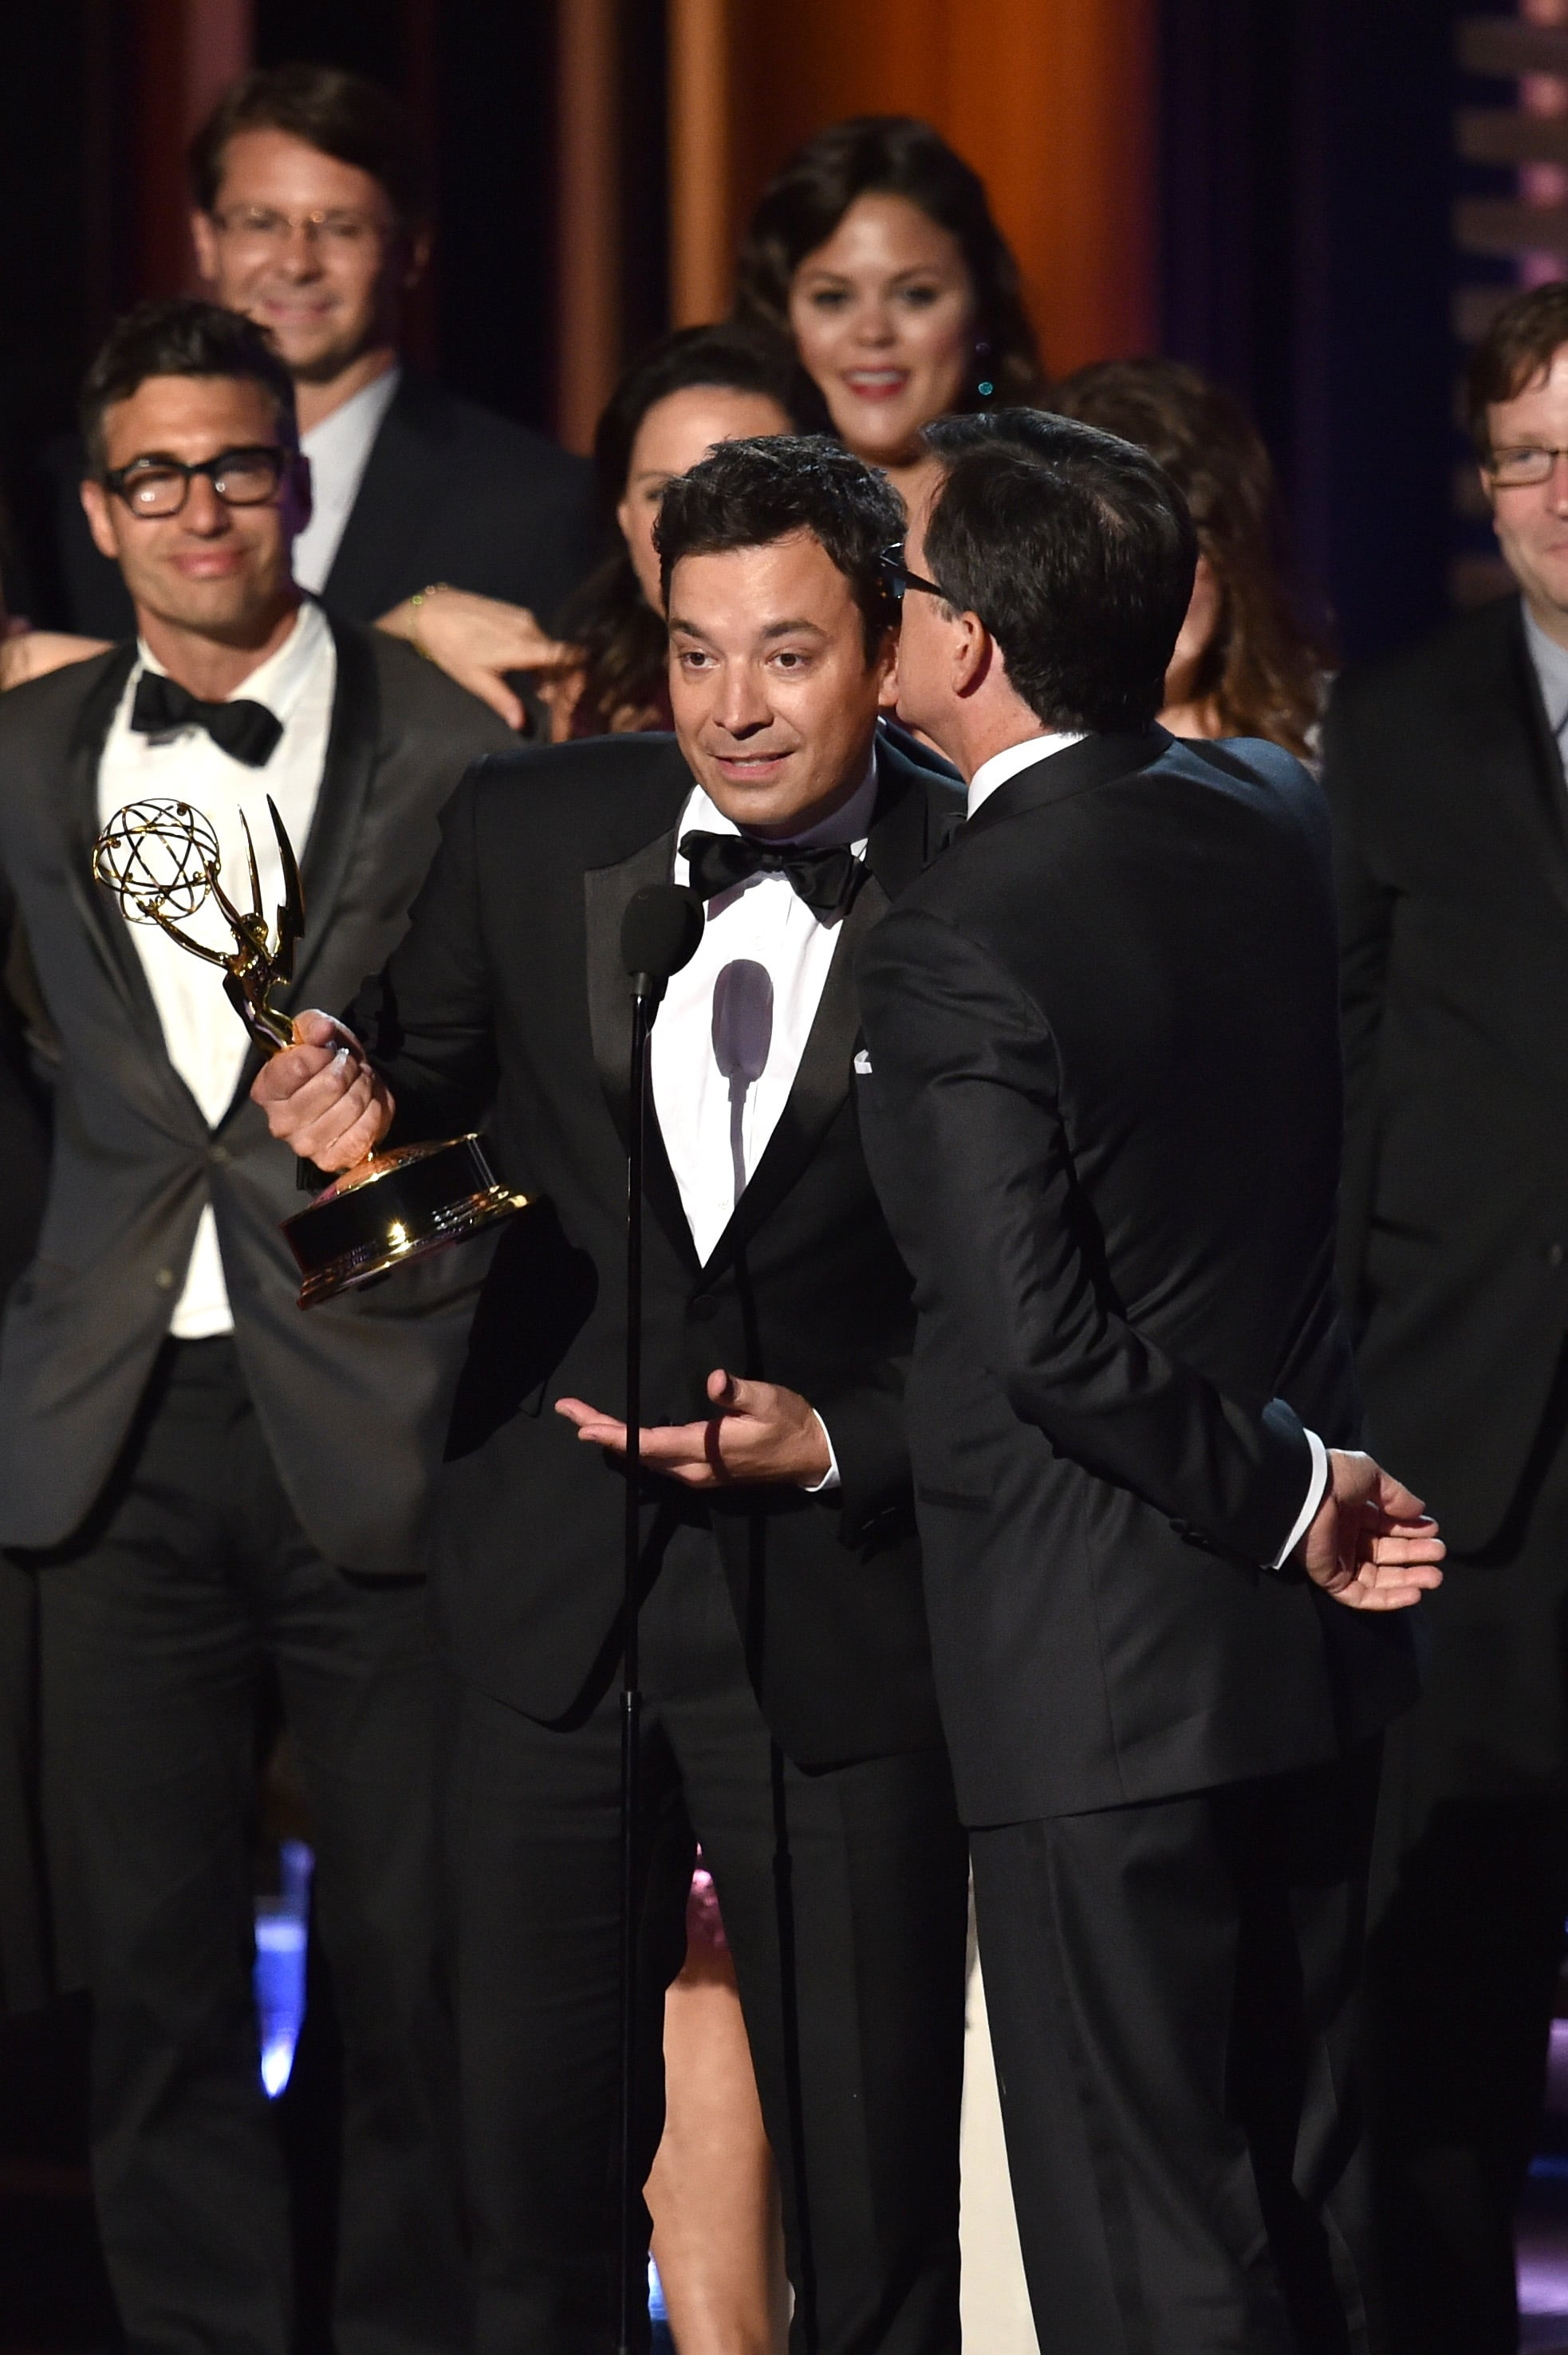 Jimmy Fallon tried to steal Stephen Colbert's Emmy.